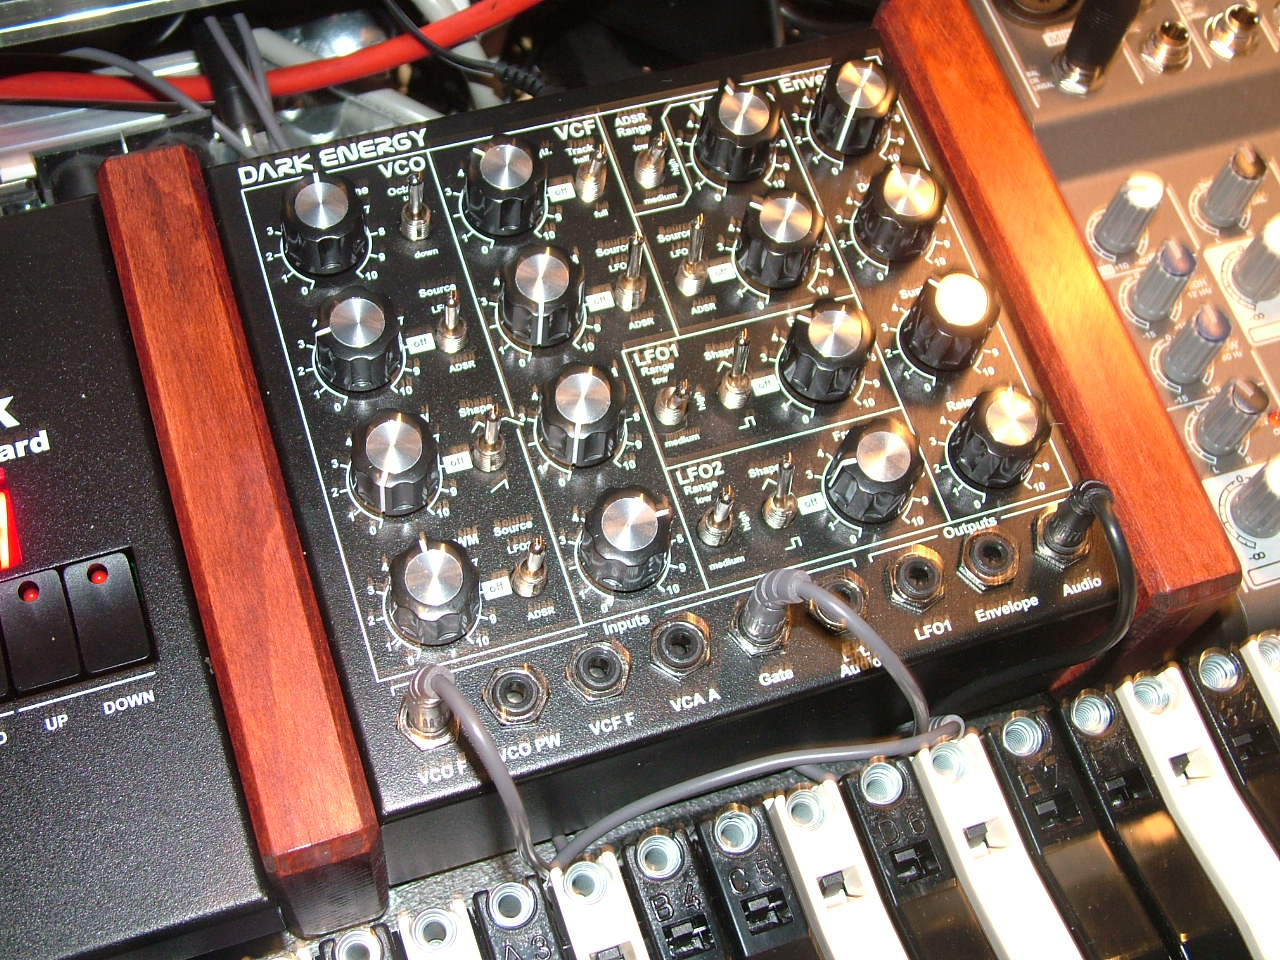 Doepfer DarkEnergy synthesizer